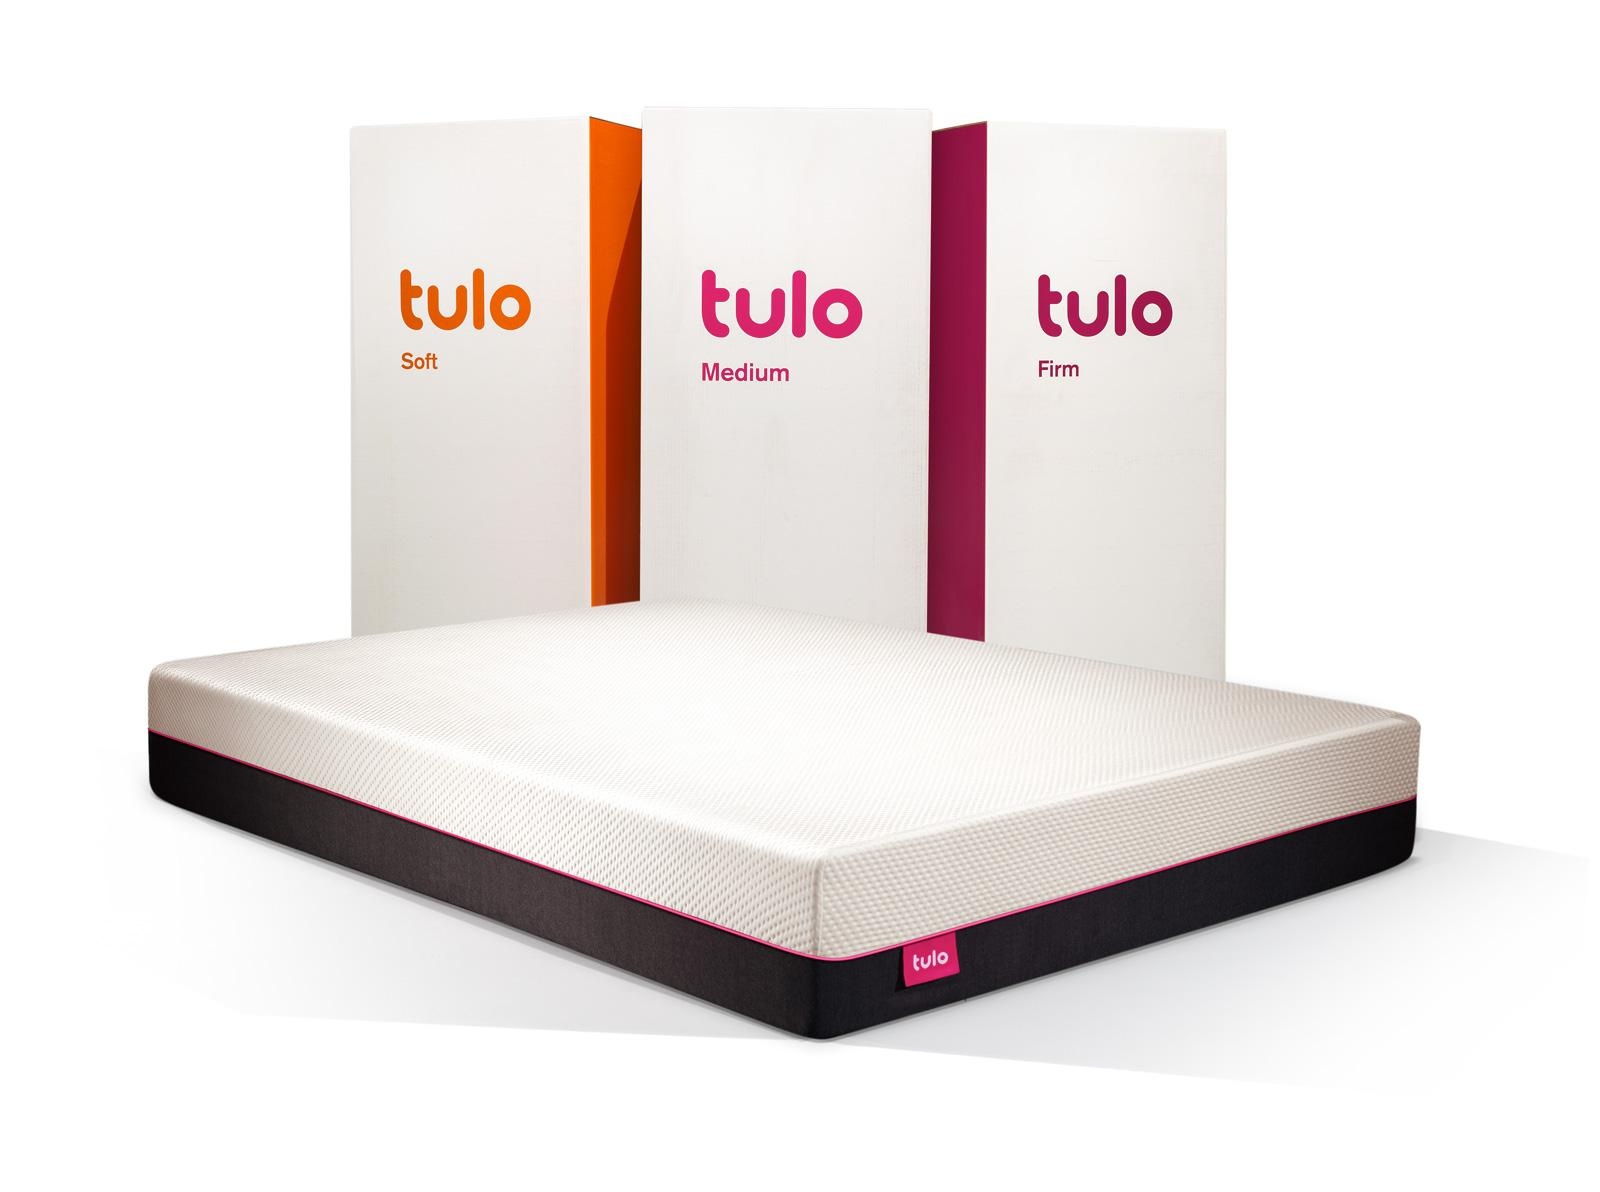 tulo Mattress | One Is Not a Choice